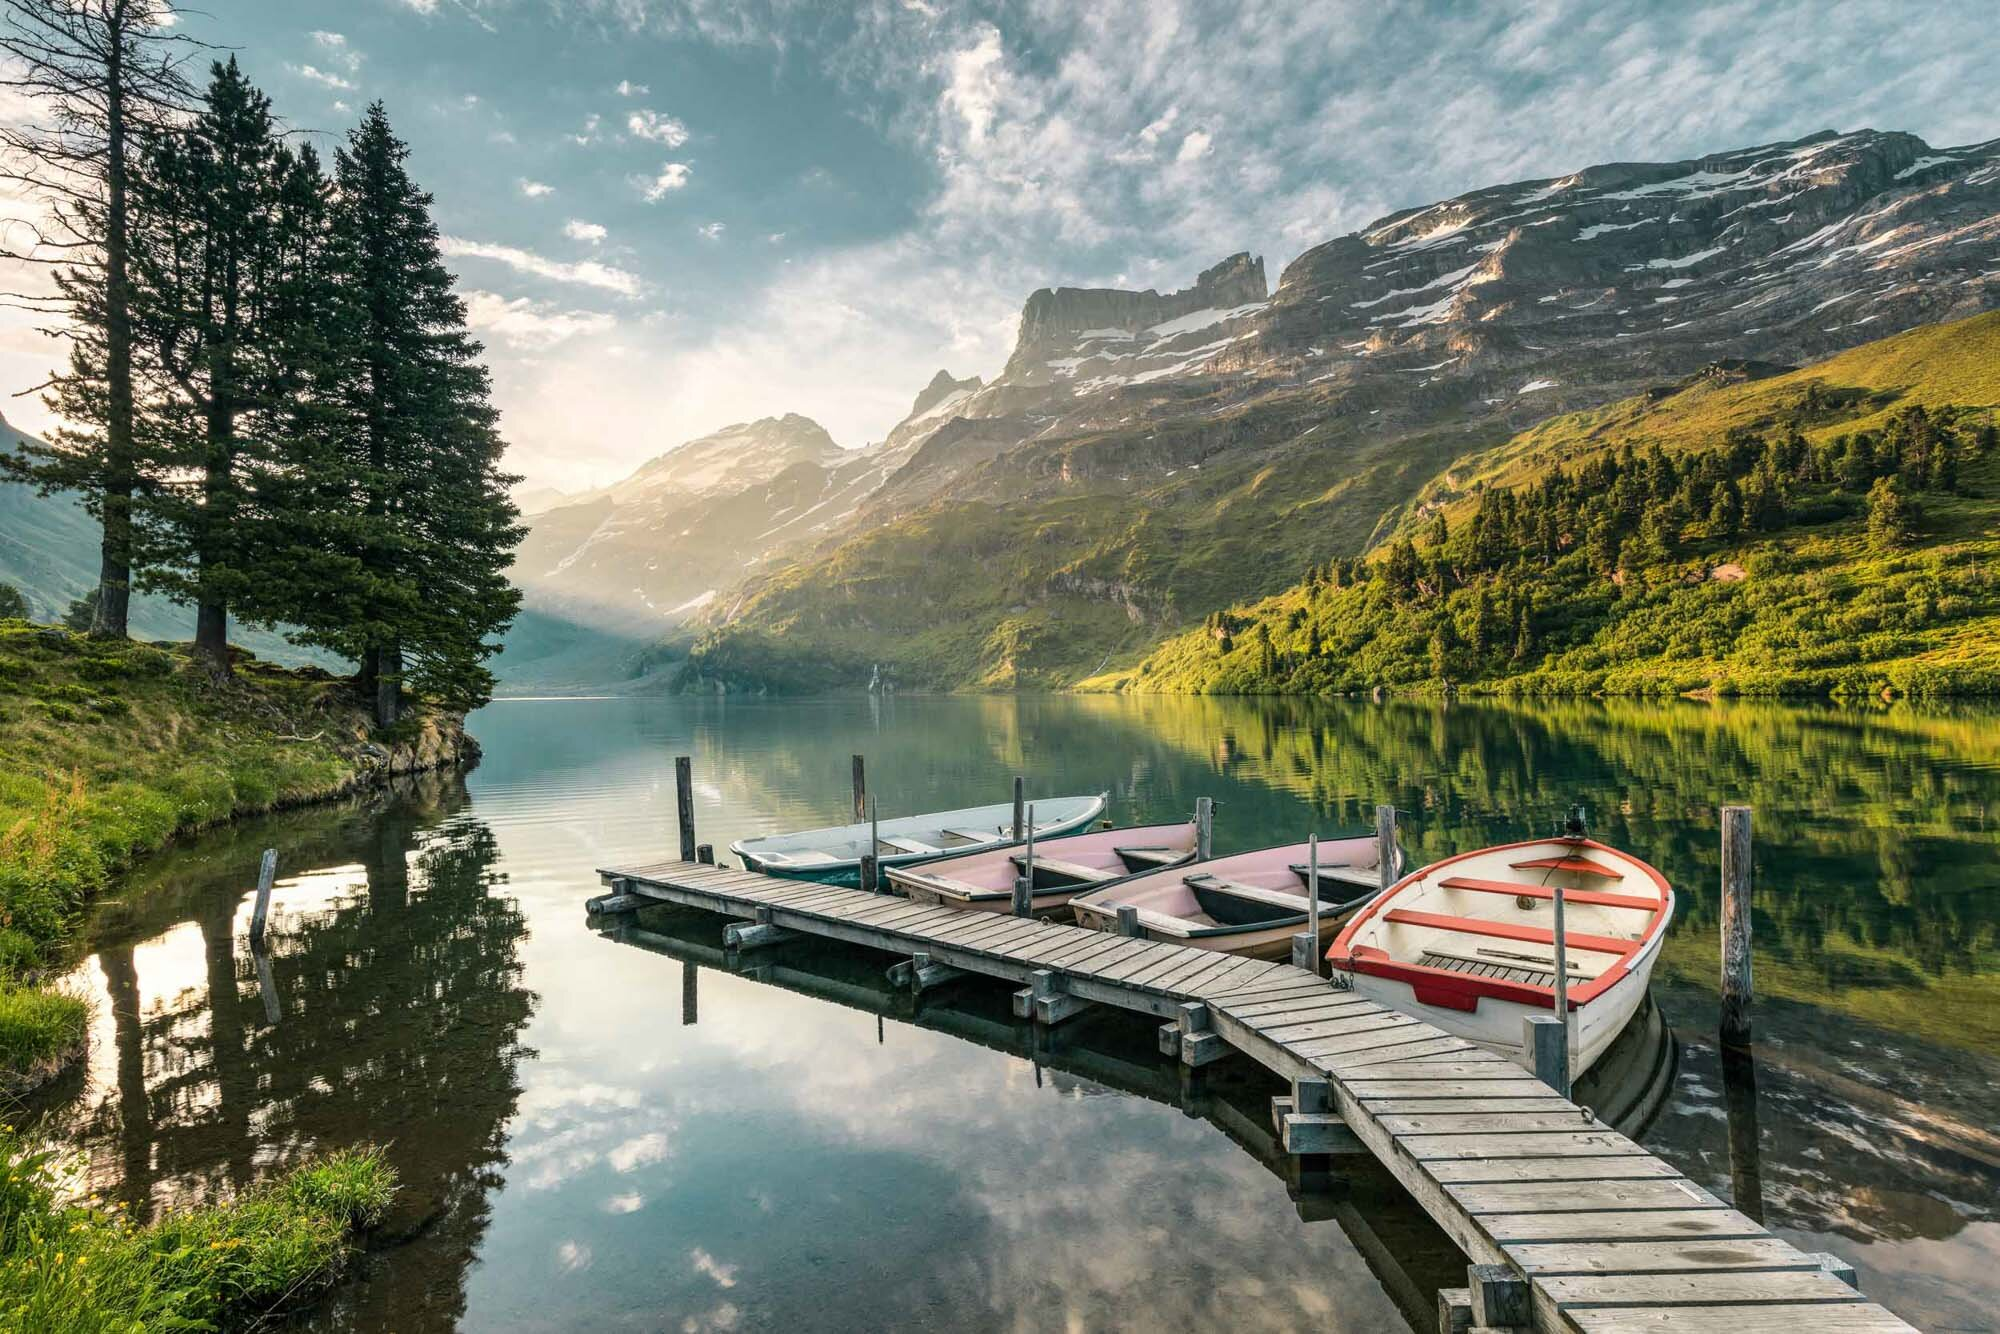 Morning mood on Engstlensee with jetty. Copyright by: Switzerland Tourism